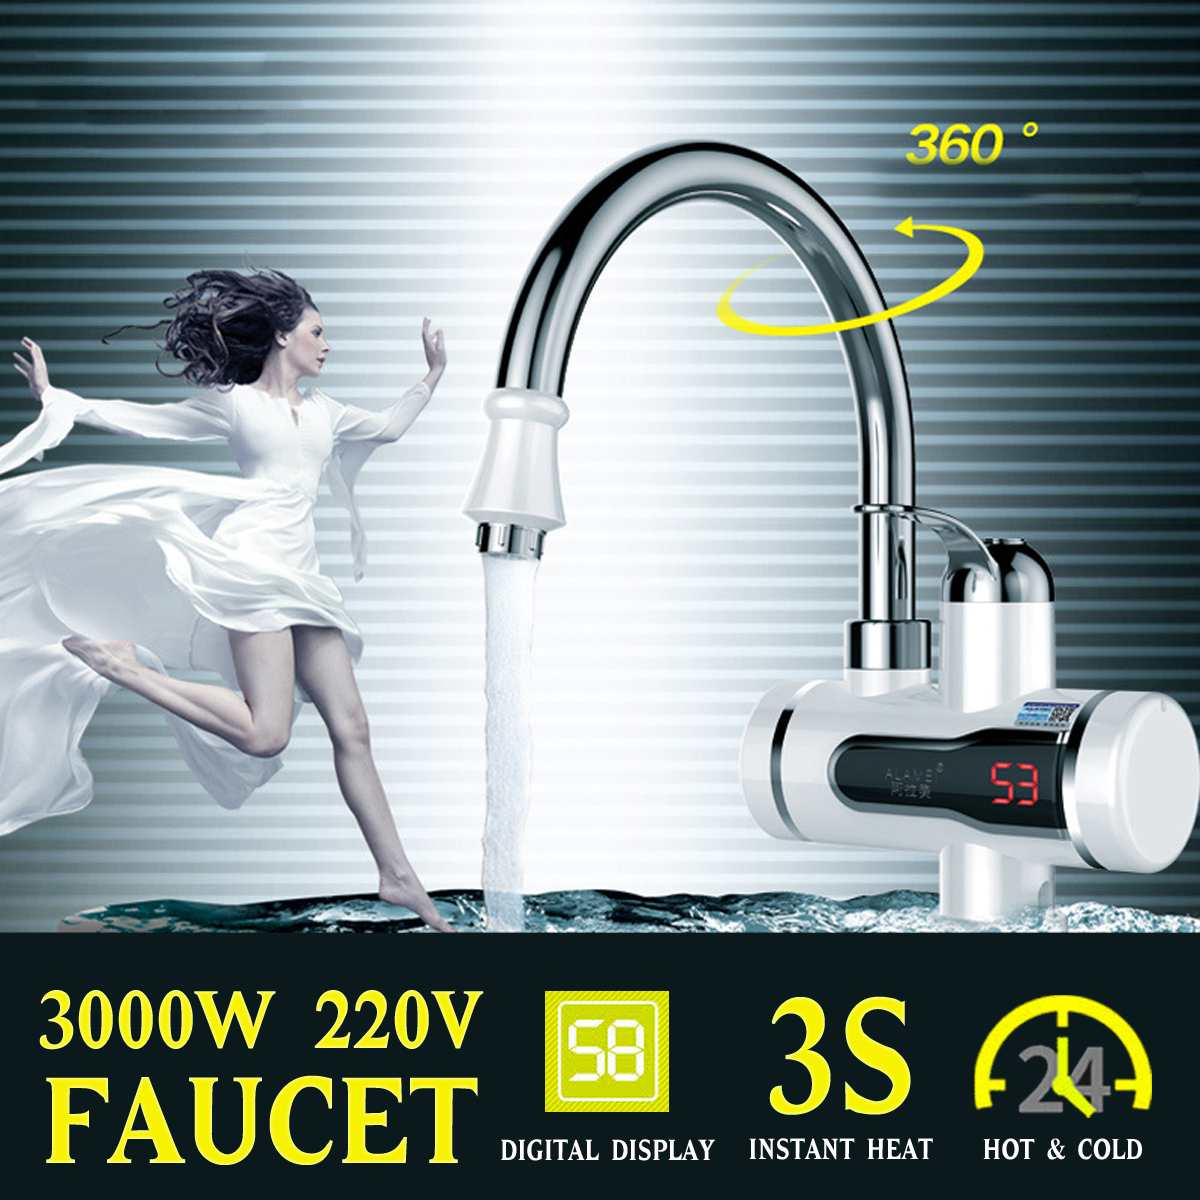 220V 3000W Electric Kitchen Water Heater Tap Instant Hot Cold Heating Water Faucet Tankless Instantaneous Digital Display